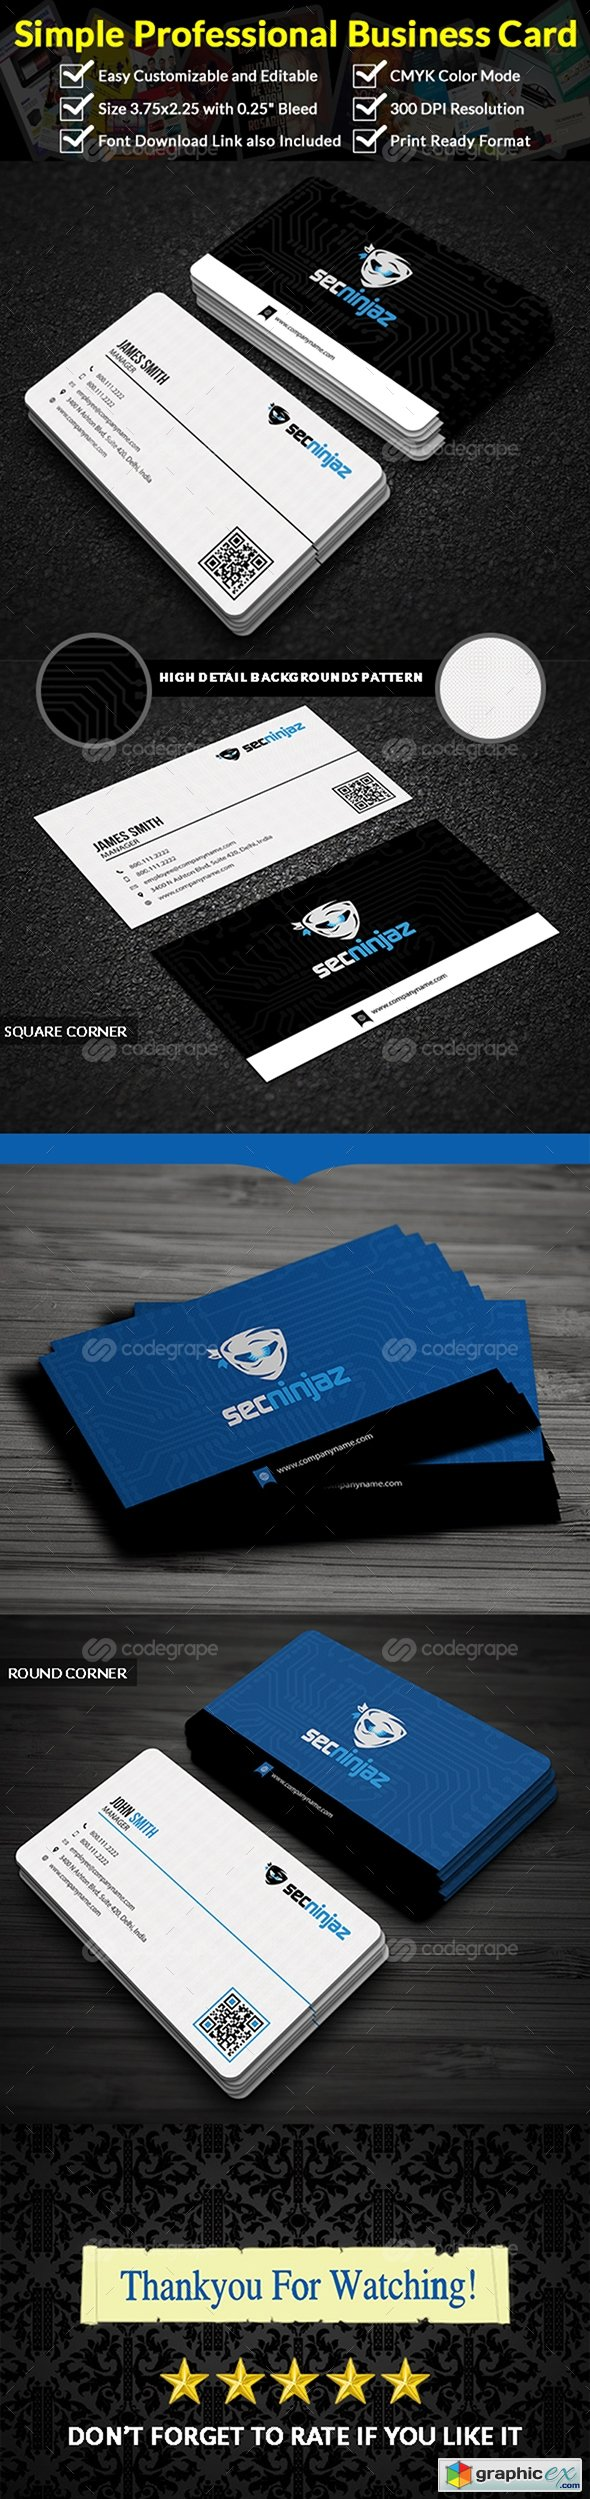 Professional business card 11498 free download vector stock image professional business card 11498 reheart Choice Image